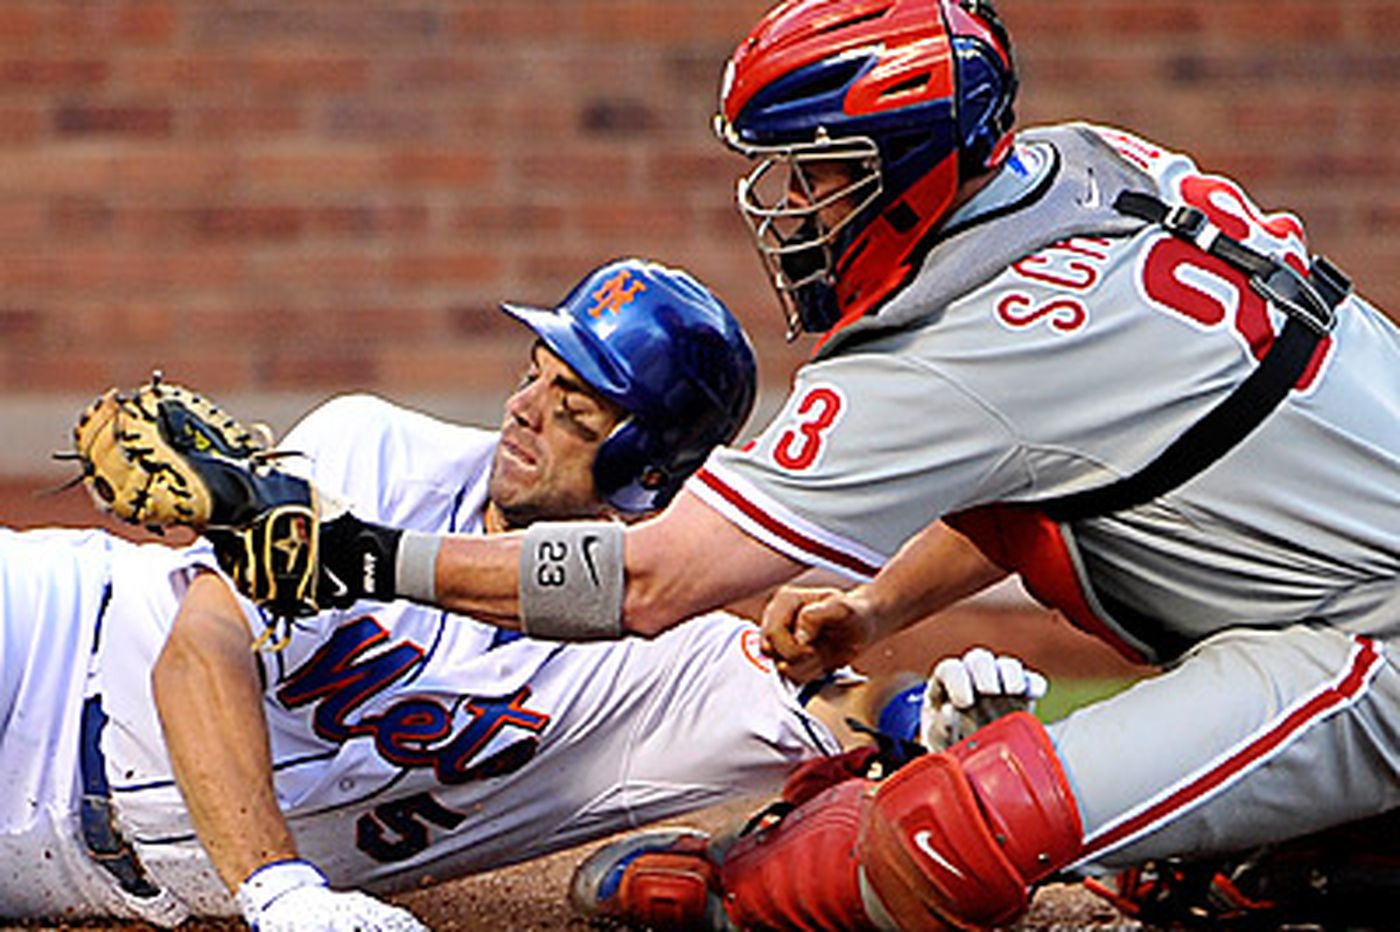 Inside the Phillies: Phillies, Mets are hardly rivals